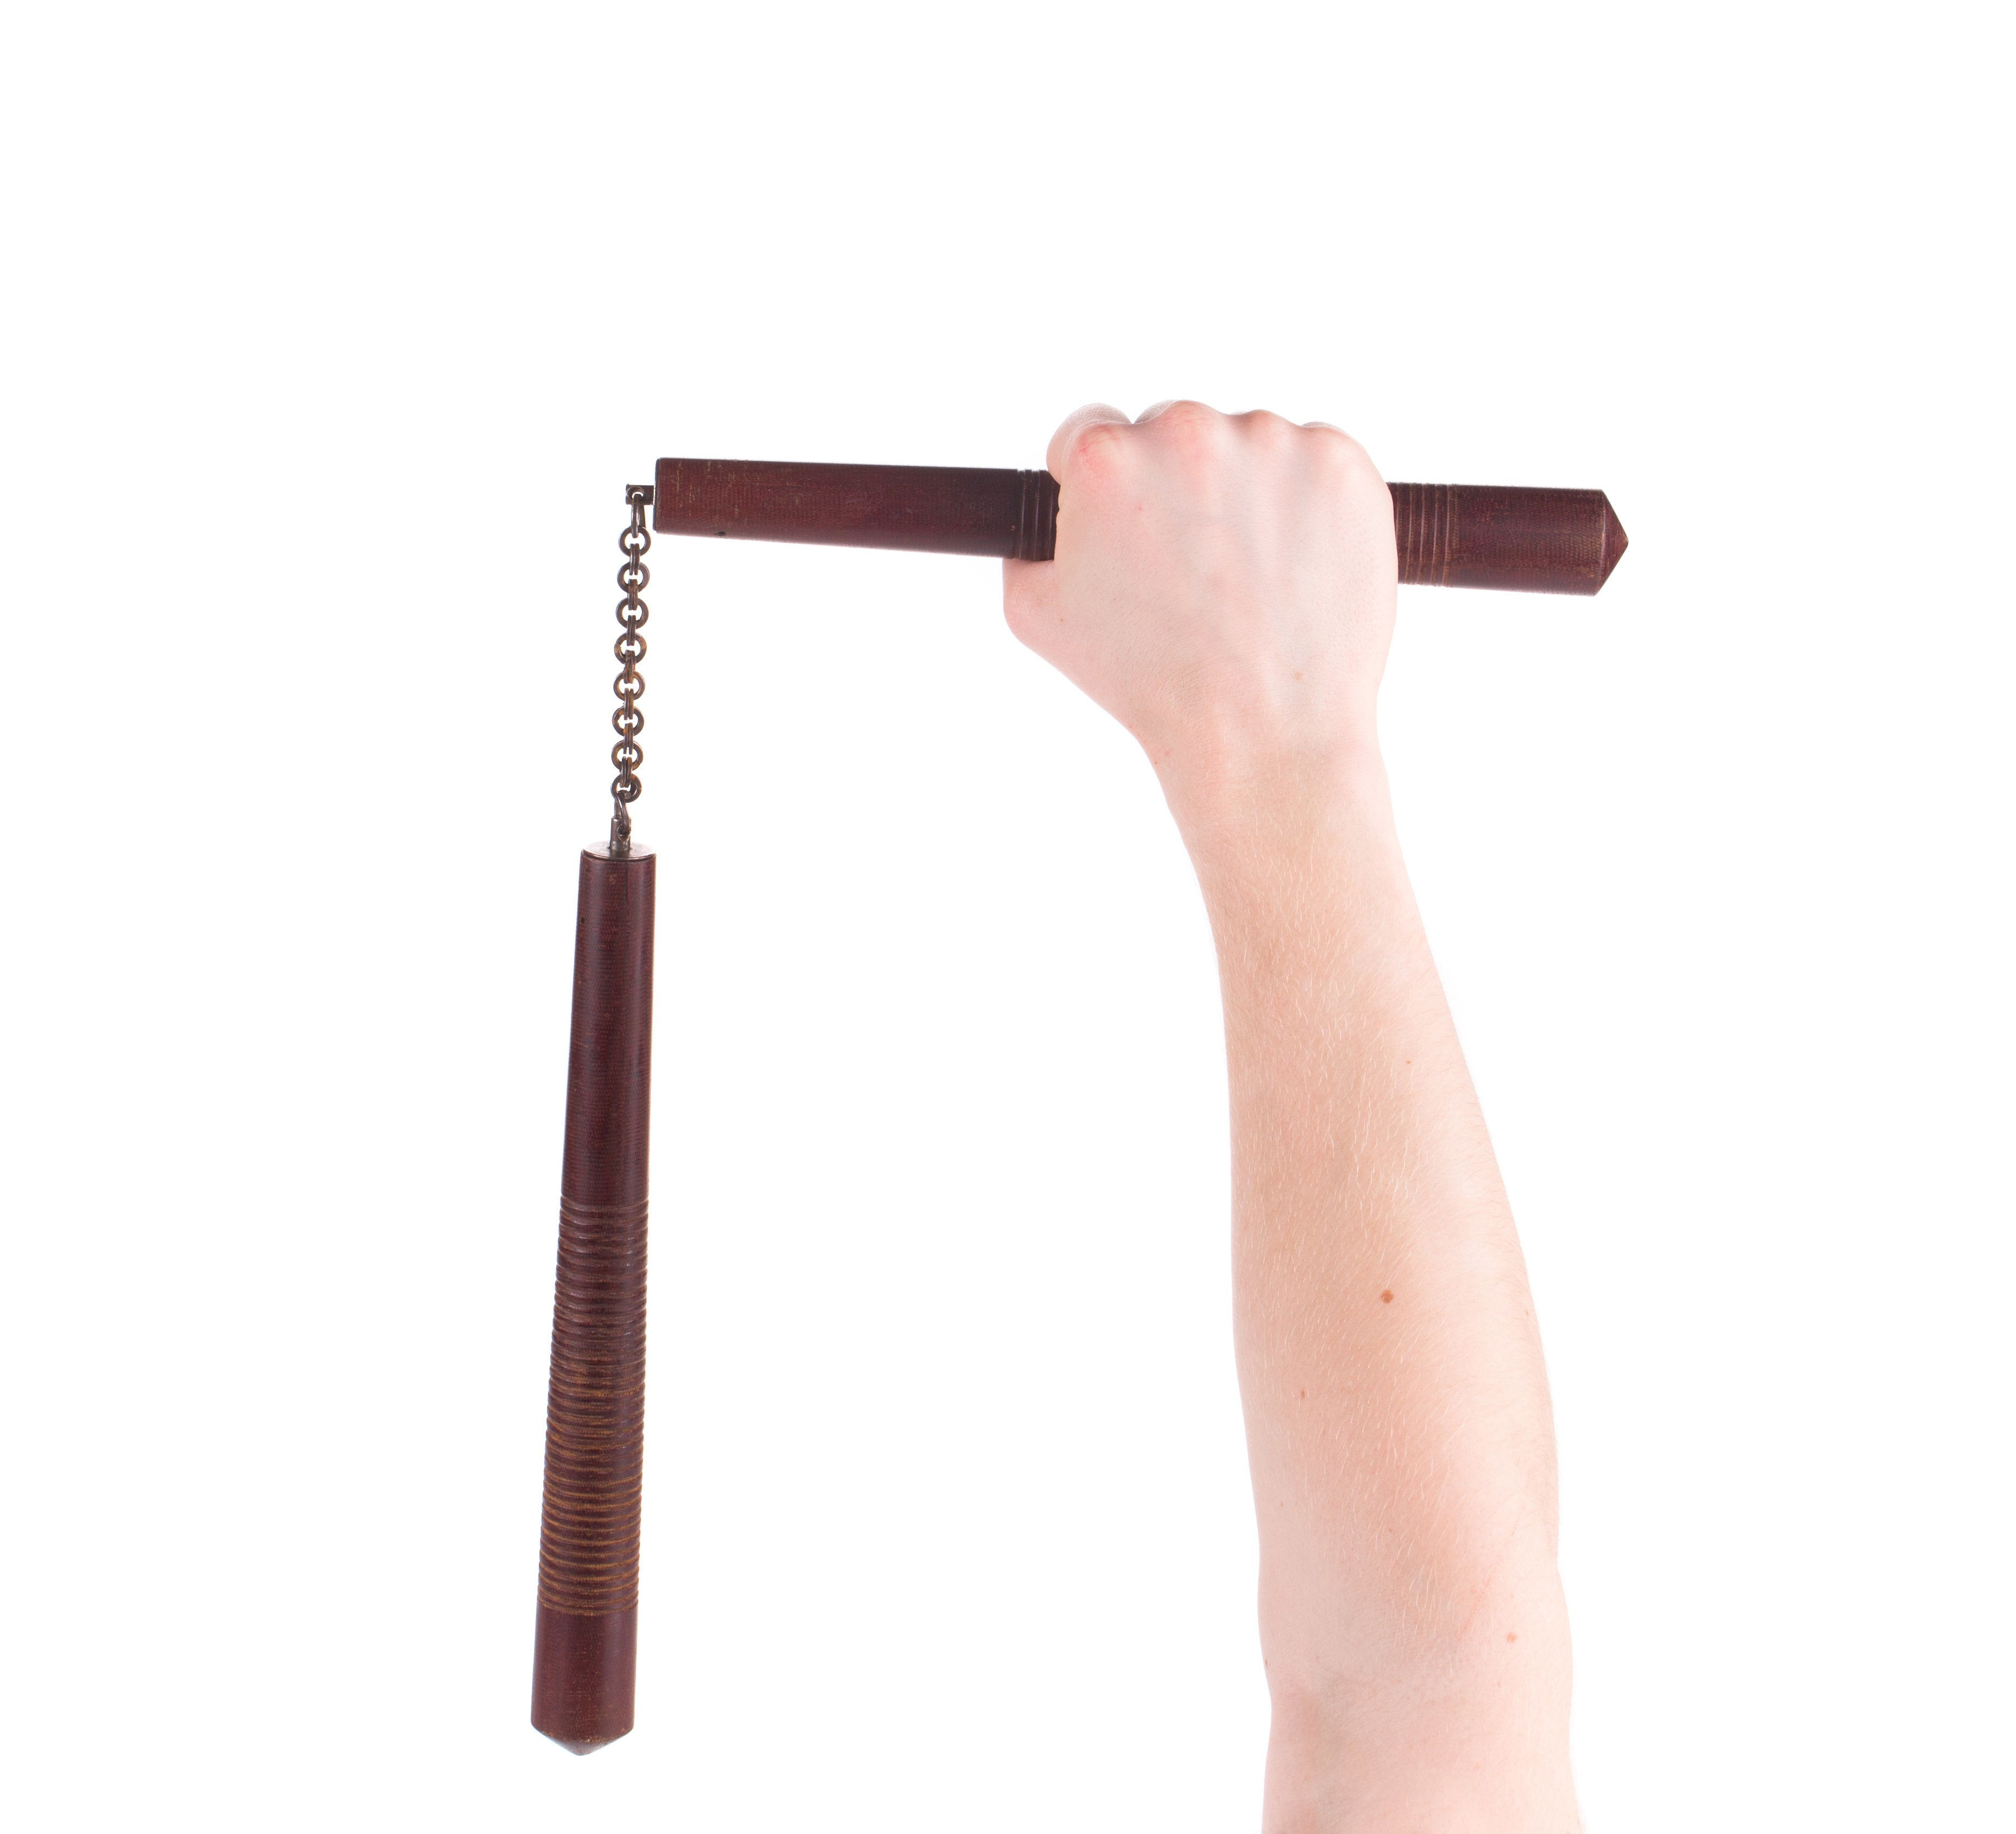 Hands hold martial arts nunchaku. Isolated on a white background.